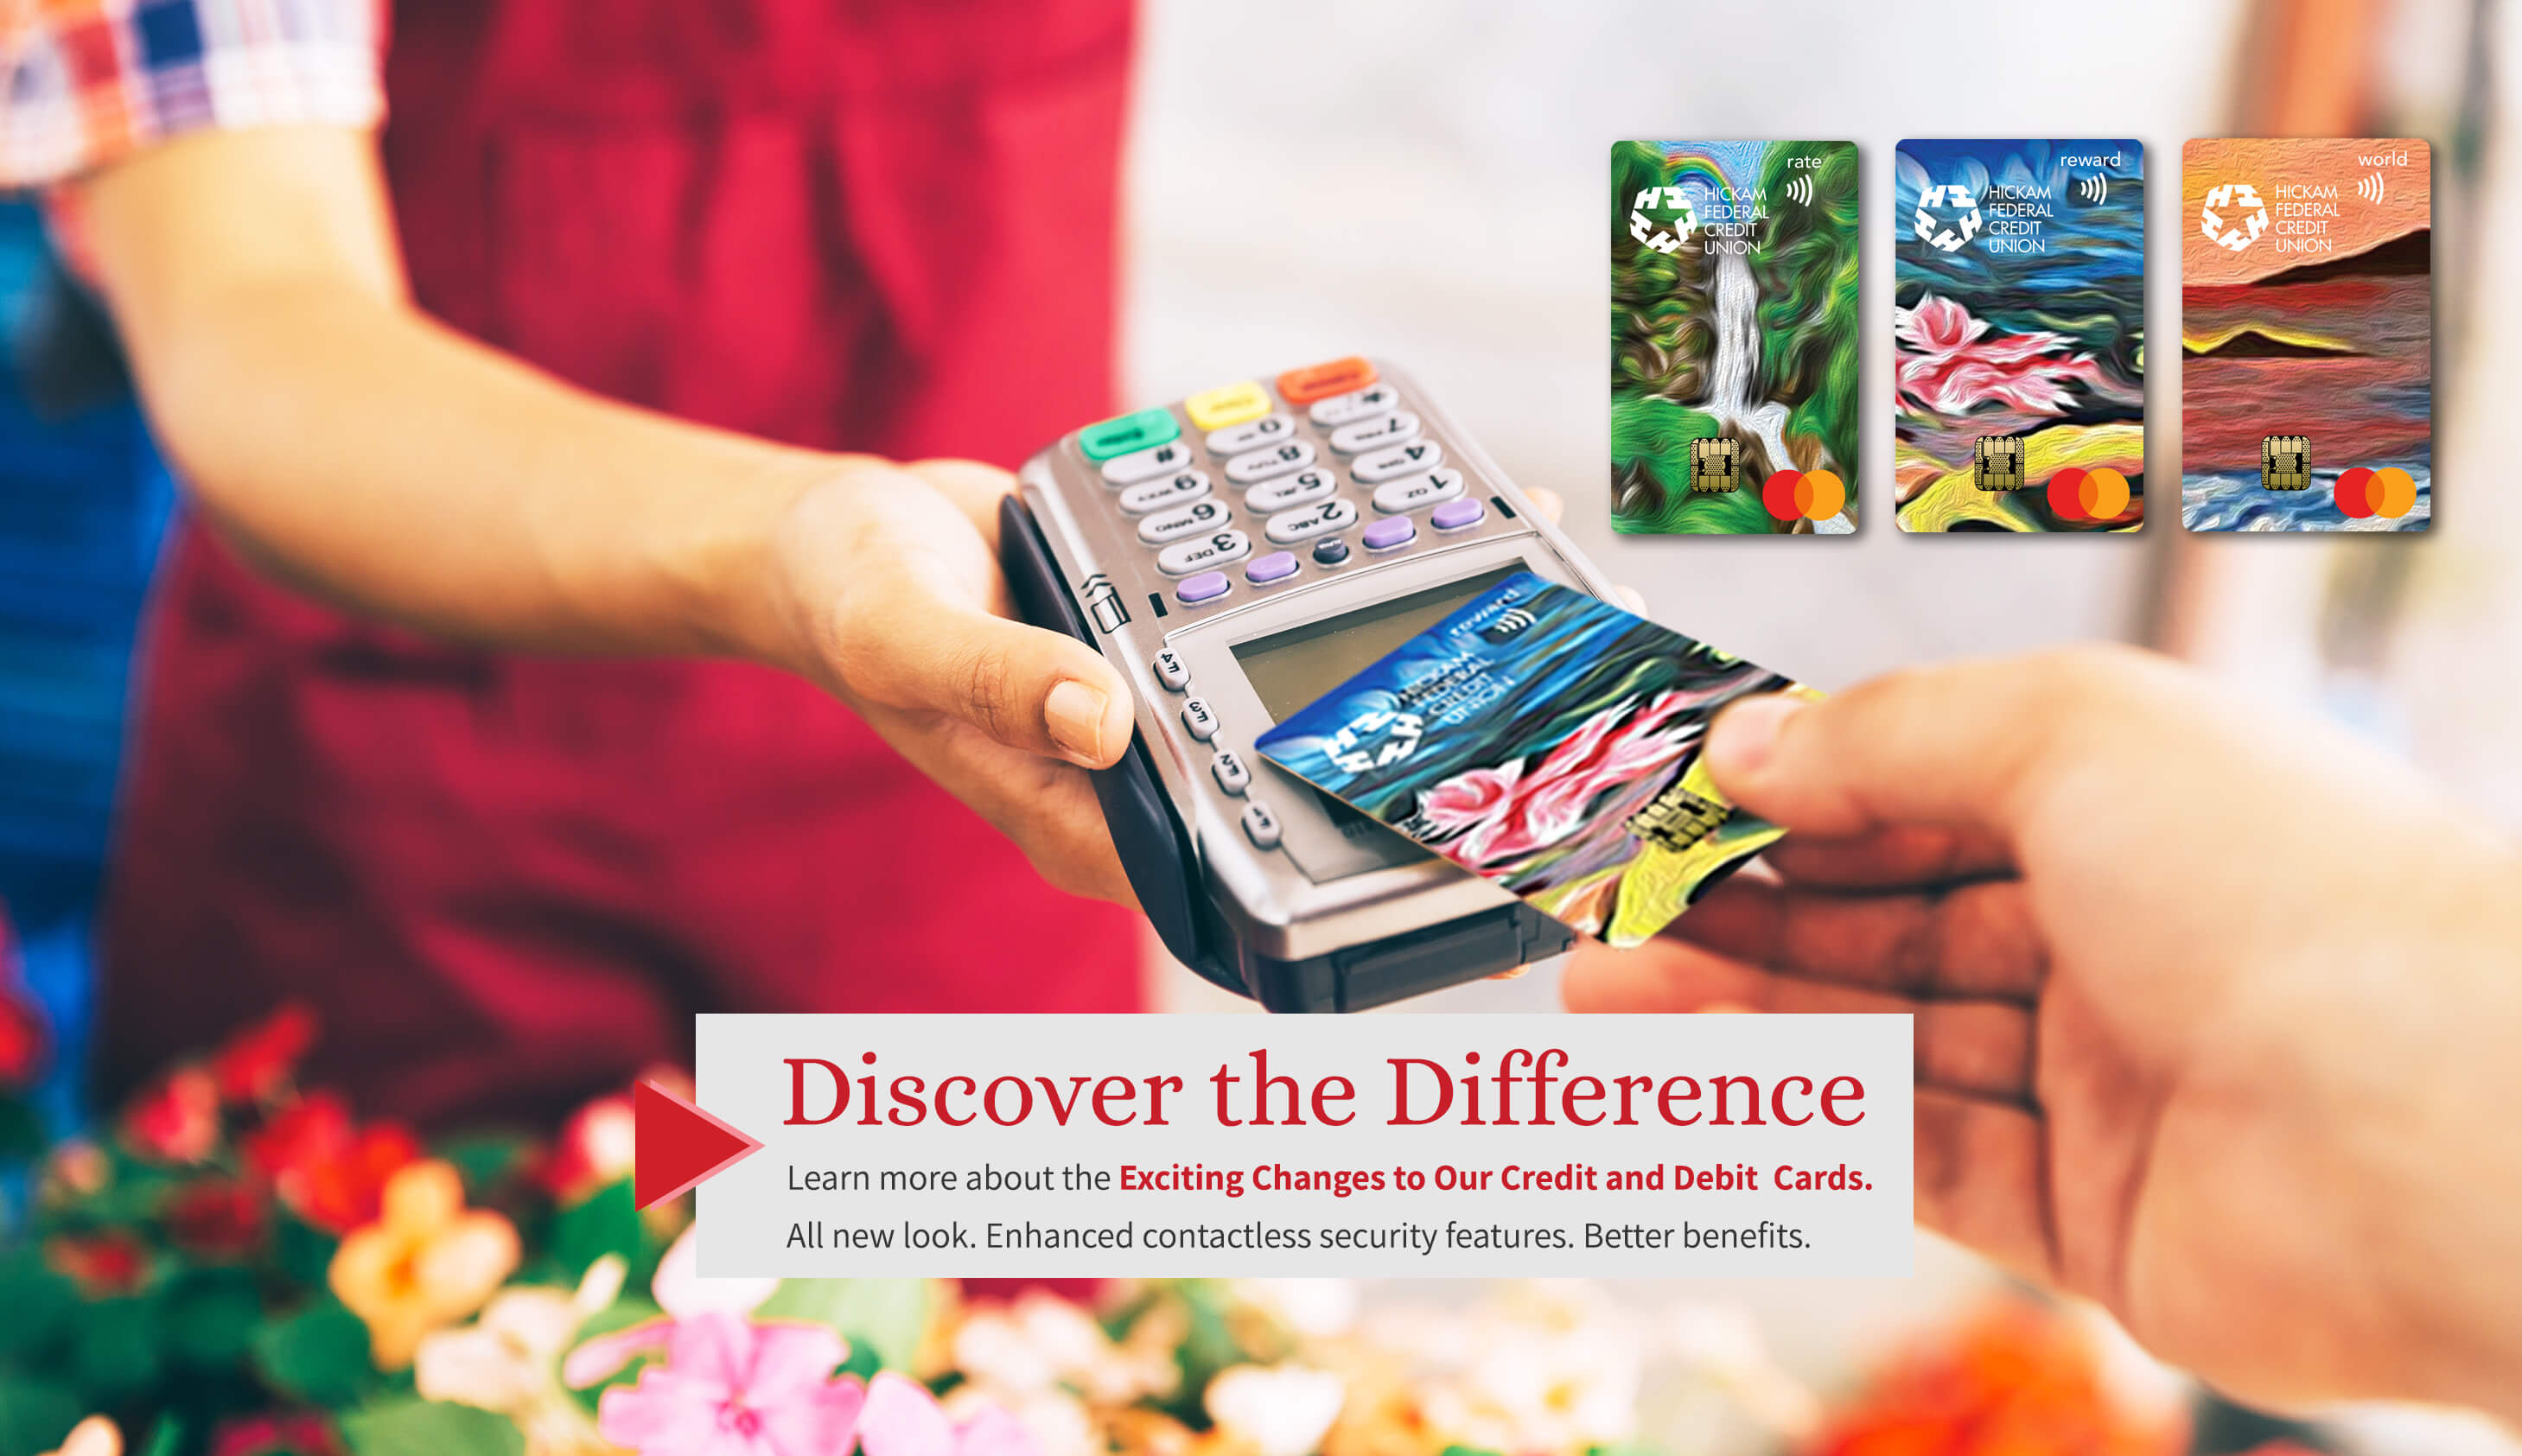 Important notice: Discover the Difference Learn more about the exciting changes to our credit card and debit cards. All new look. Enhanced contactless security features. Better benefits.